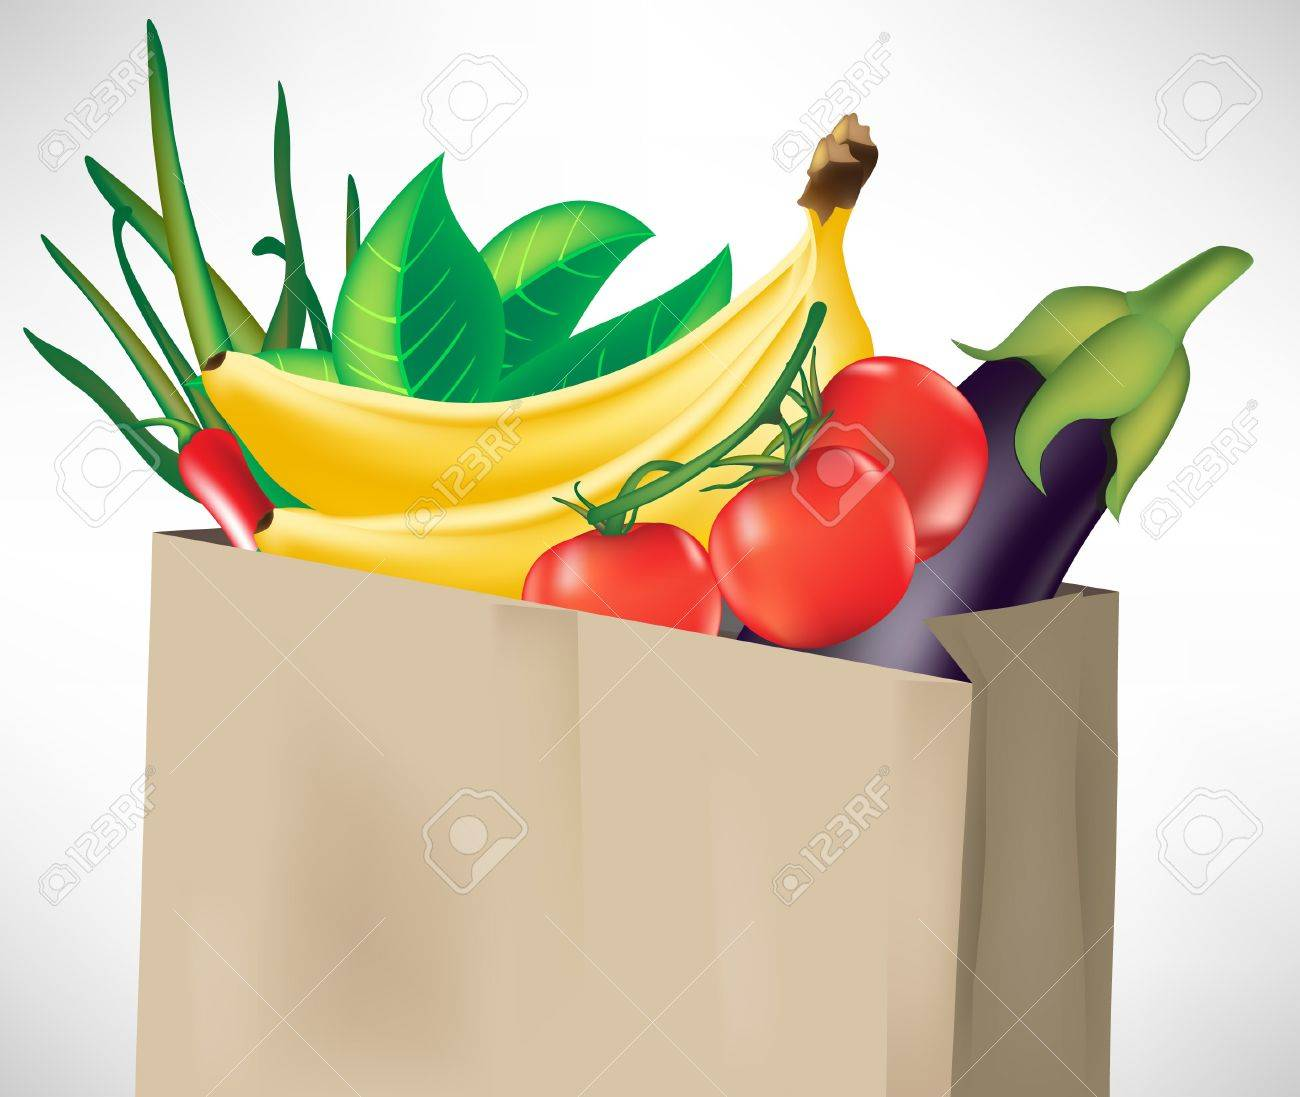 Grocery Bag With Fruits And Vegetables Isolated Royalty Free ...